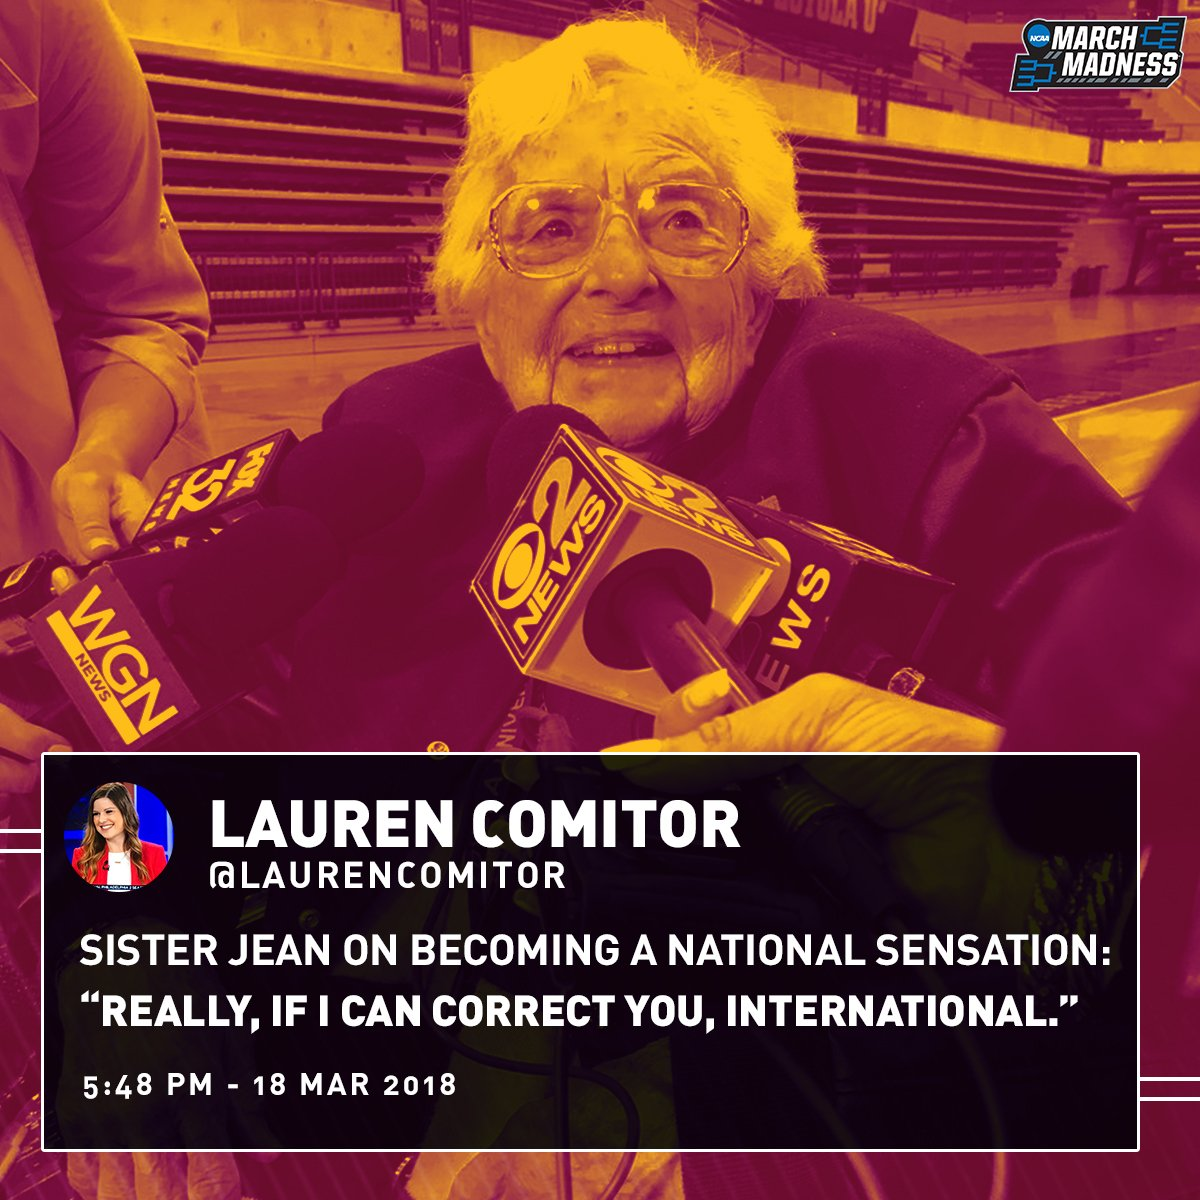 Sister Jean is going global 🌍  #MarchMadness